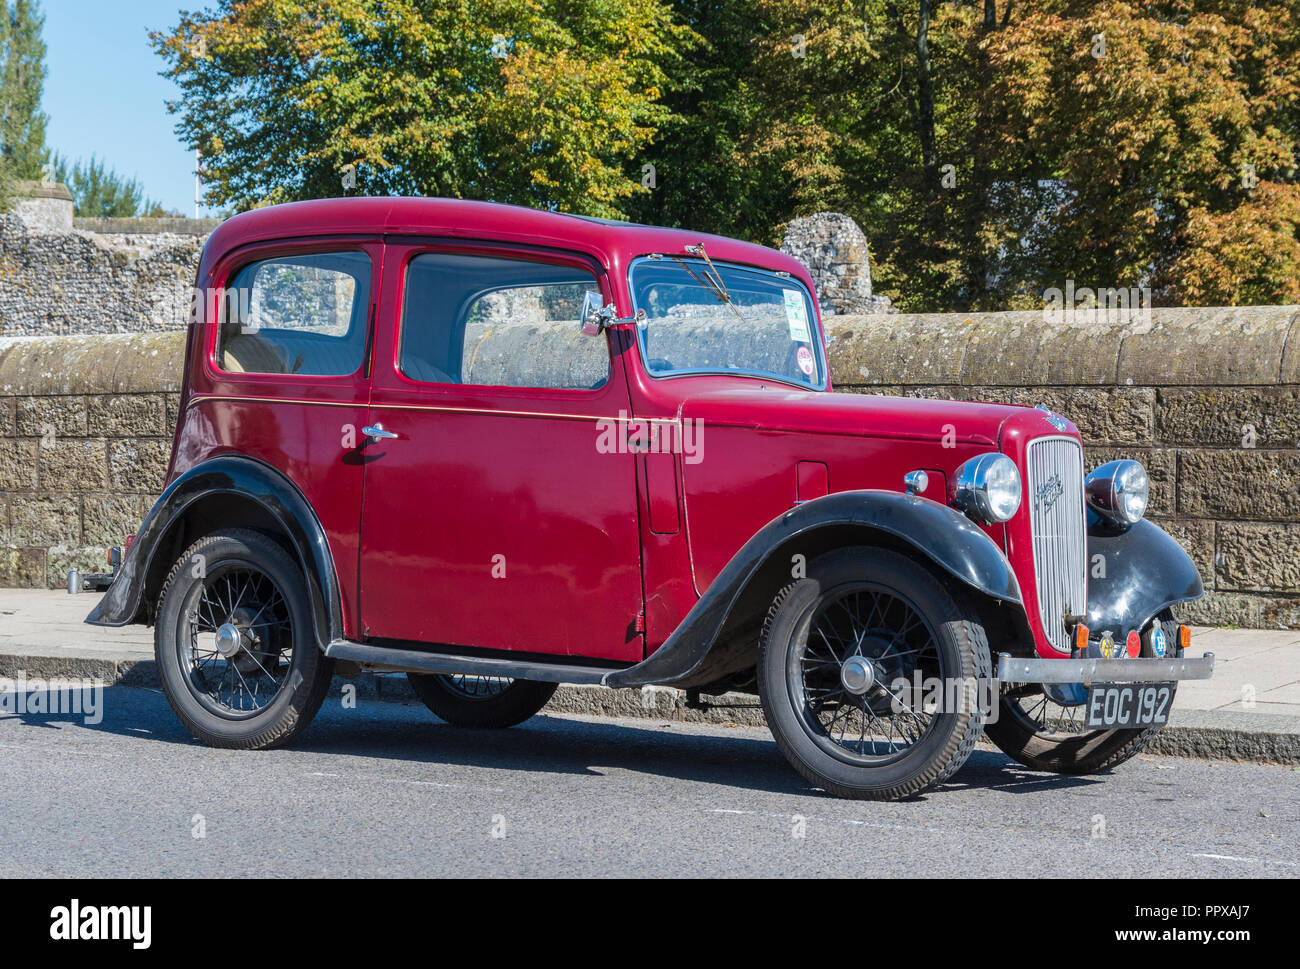 Red Austin Seven (Austin 7) vintage saloon car from 1938 parked by the roadside in the UK. Stock Photo